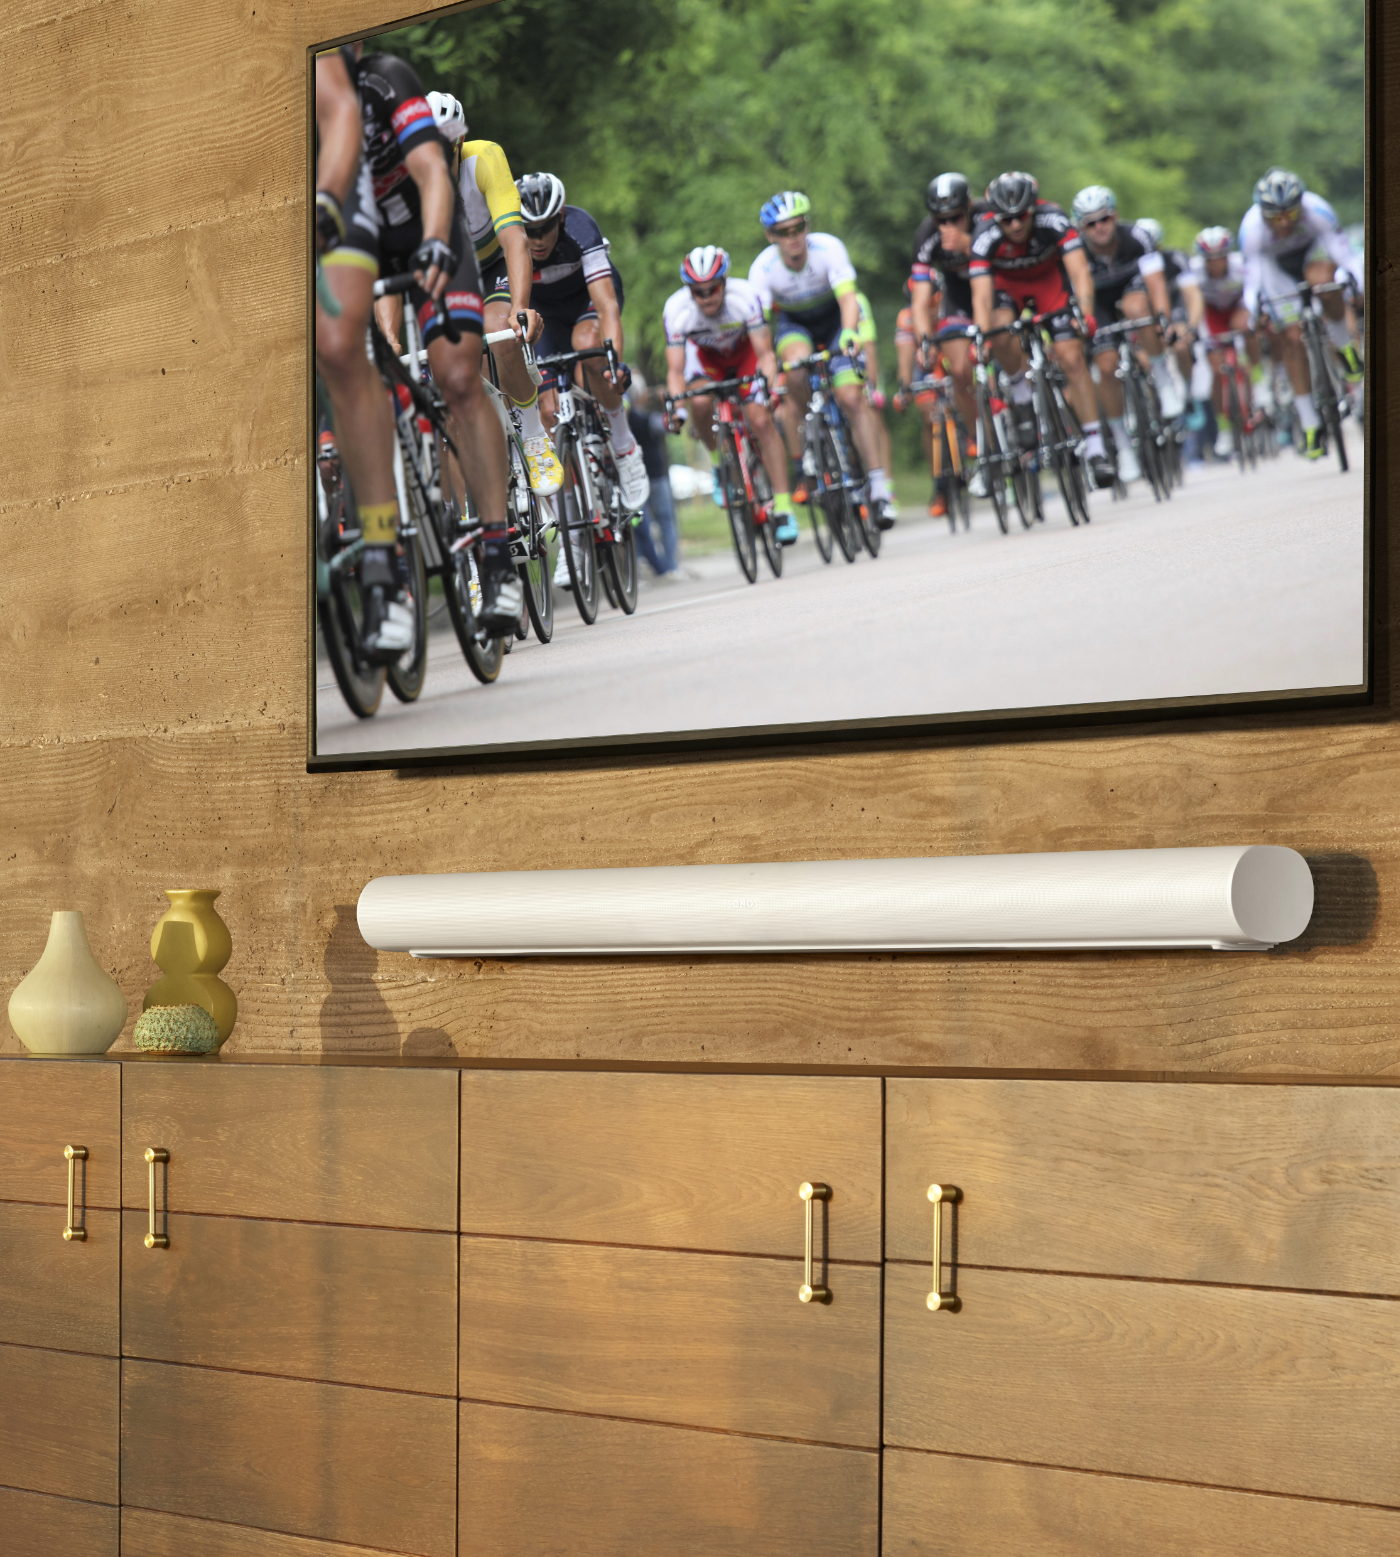 Arc_White-Lifestyle-At_Home_With_Sonos-Cycling-Q1FY21_MST-MST_JPEG_fid119877